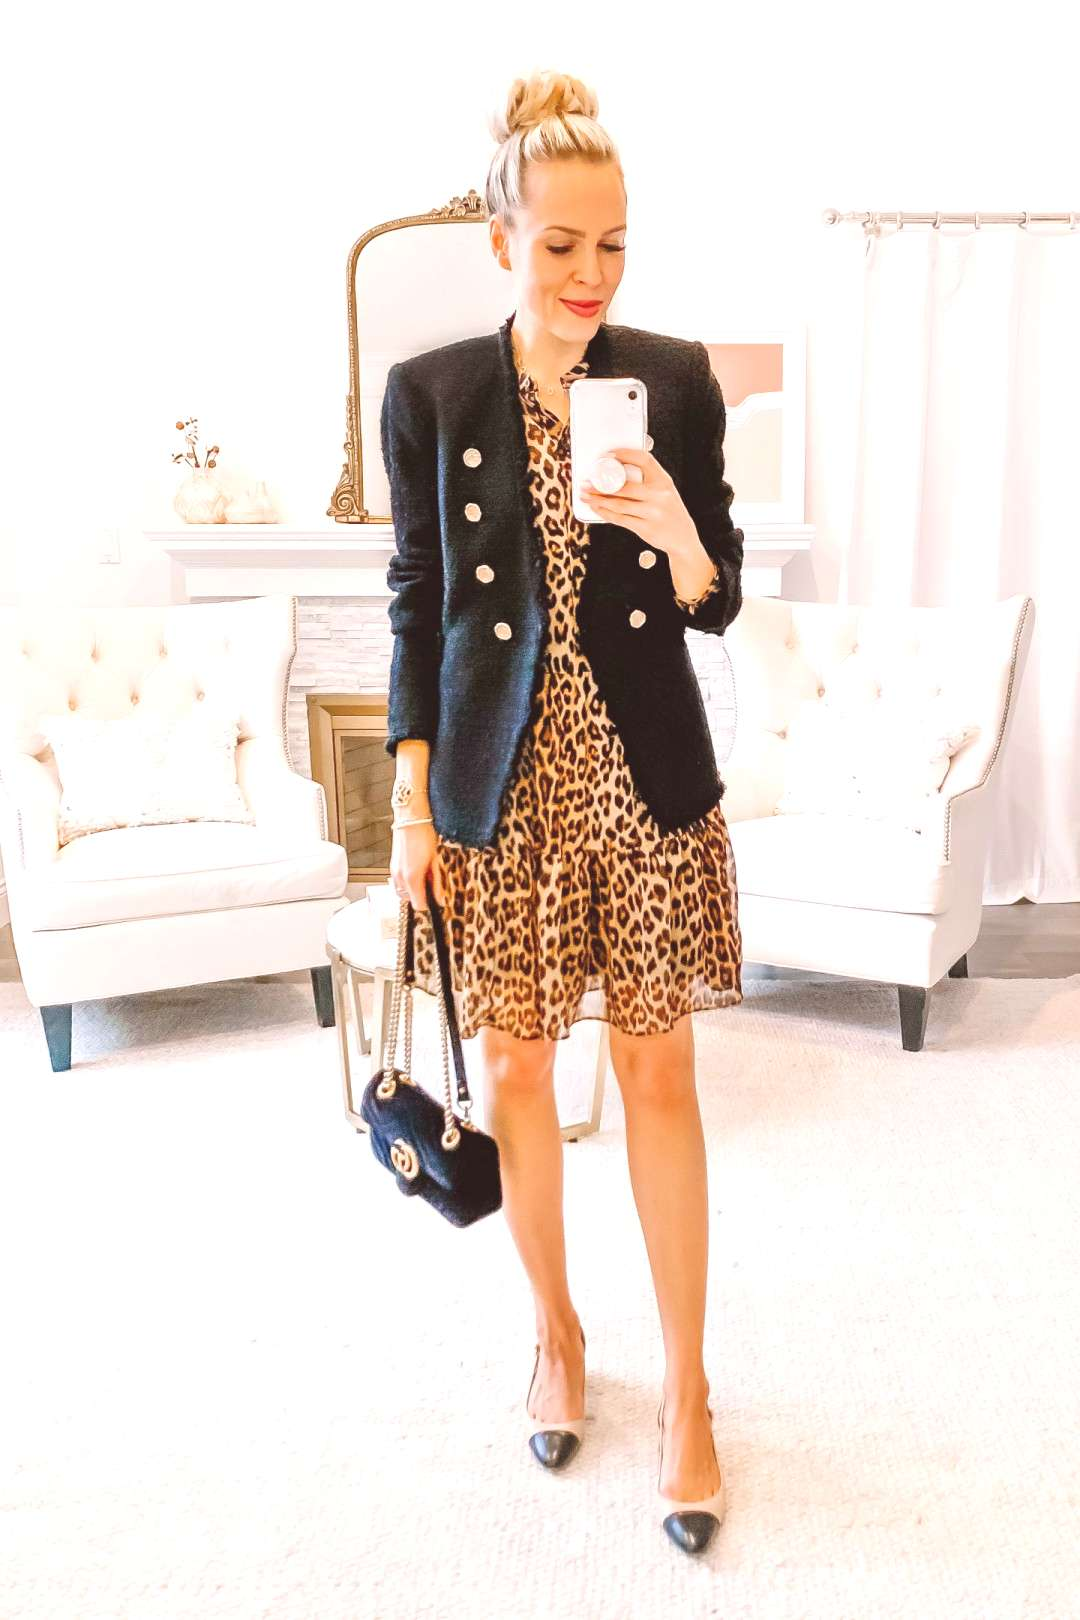 How to style leopard print 5 ways   Lombard and Fifth HampM leopard chiffon dress styled Five Ways, f